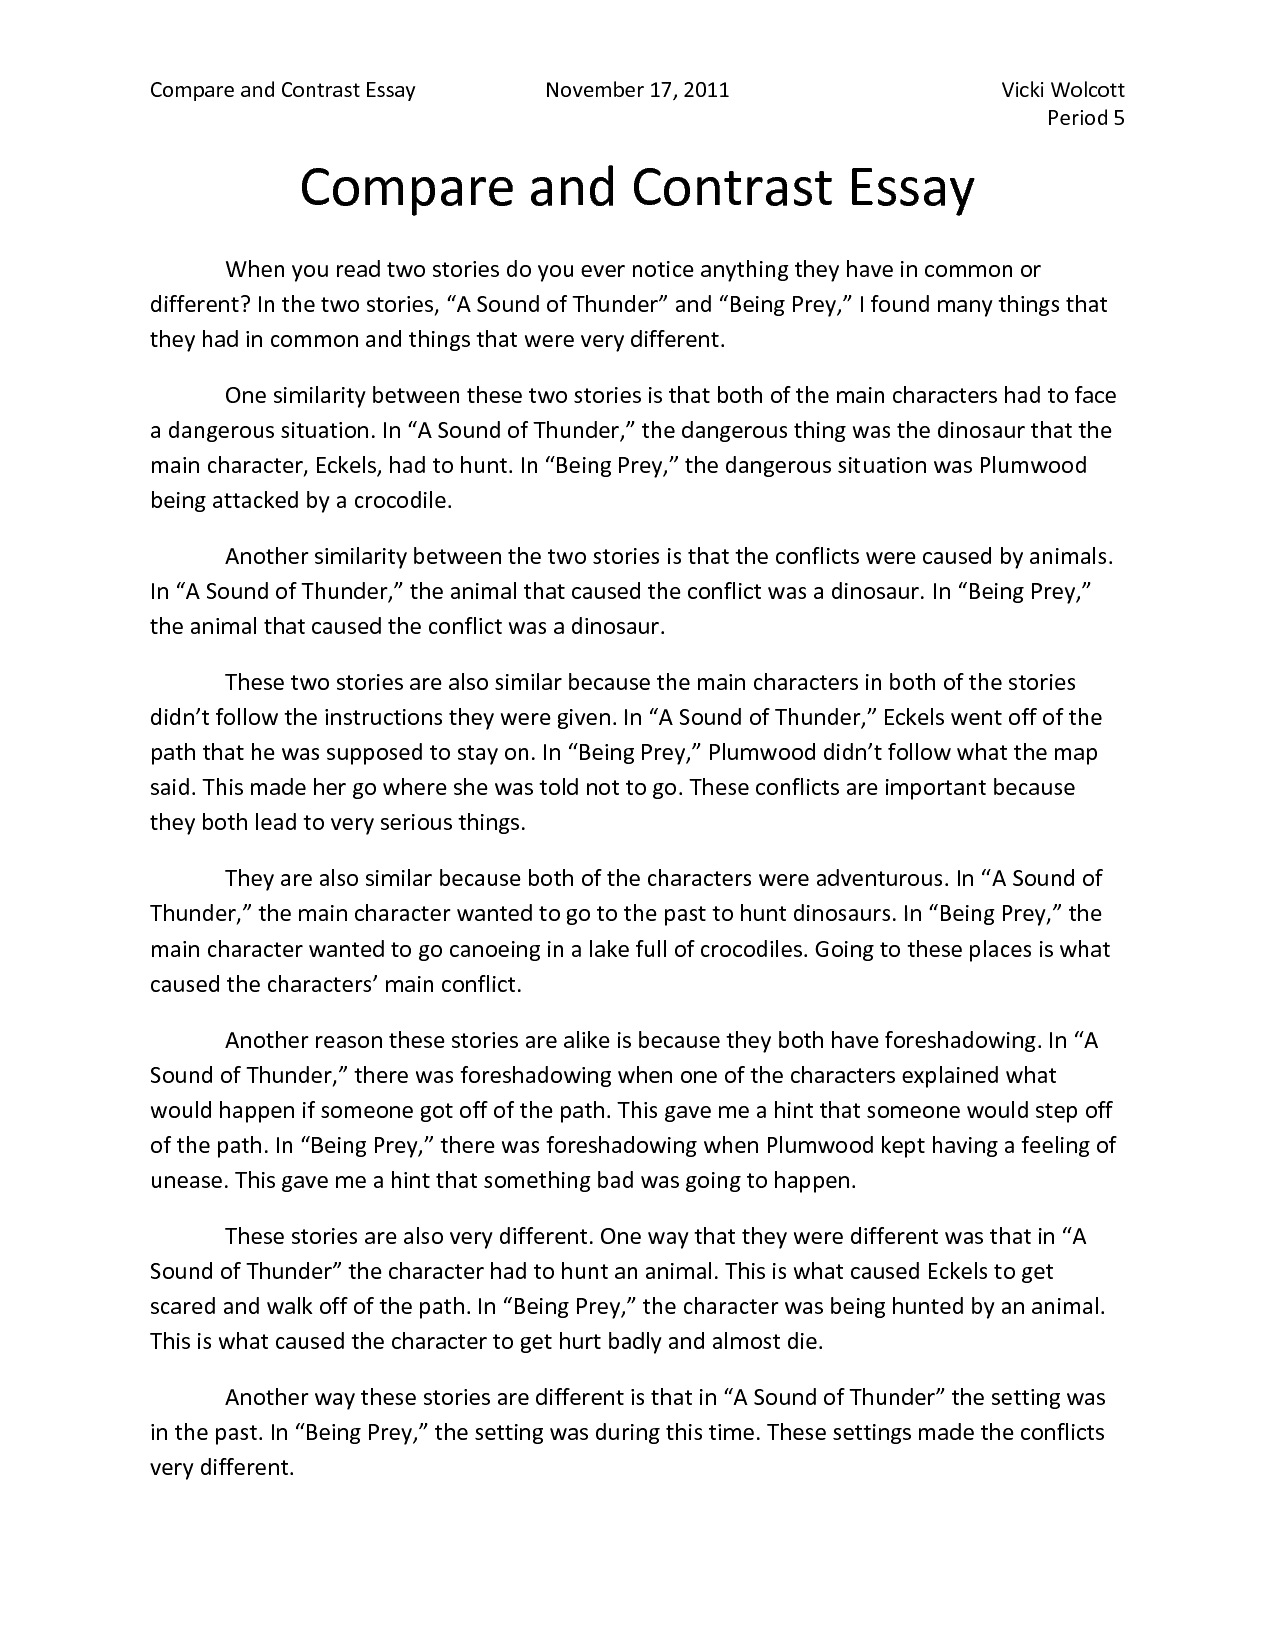 Literature Topics for a Compare and Contrast Essay